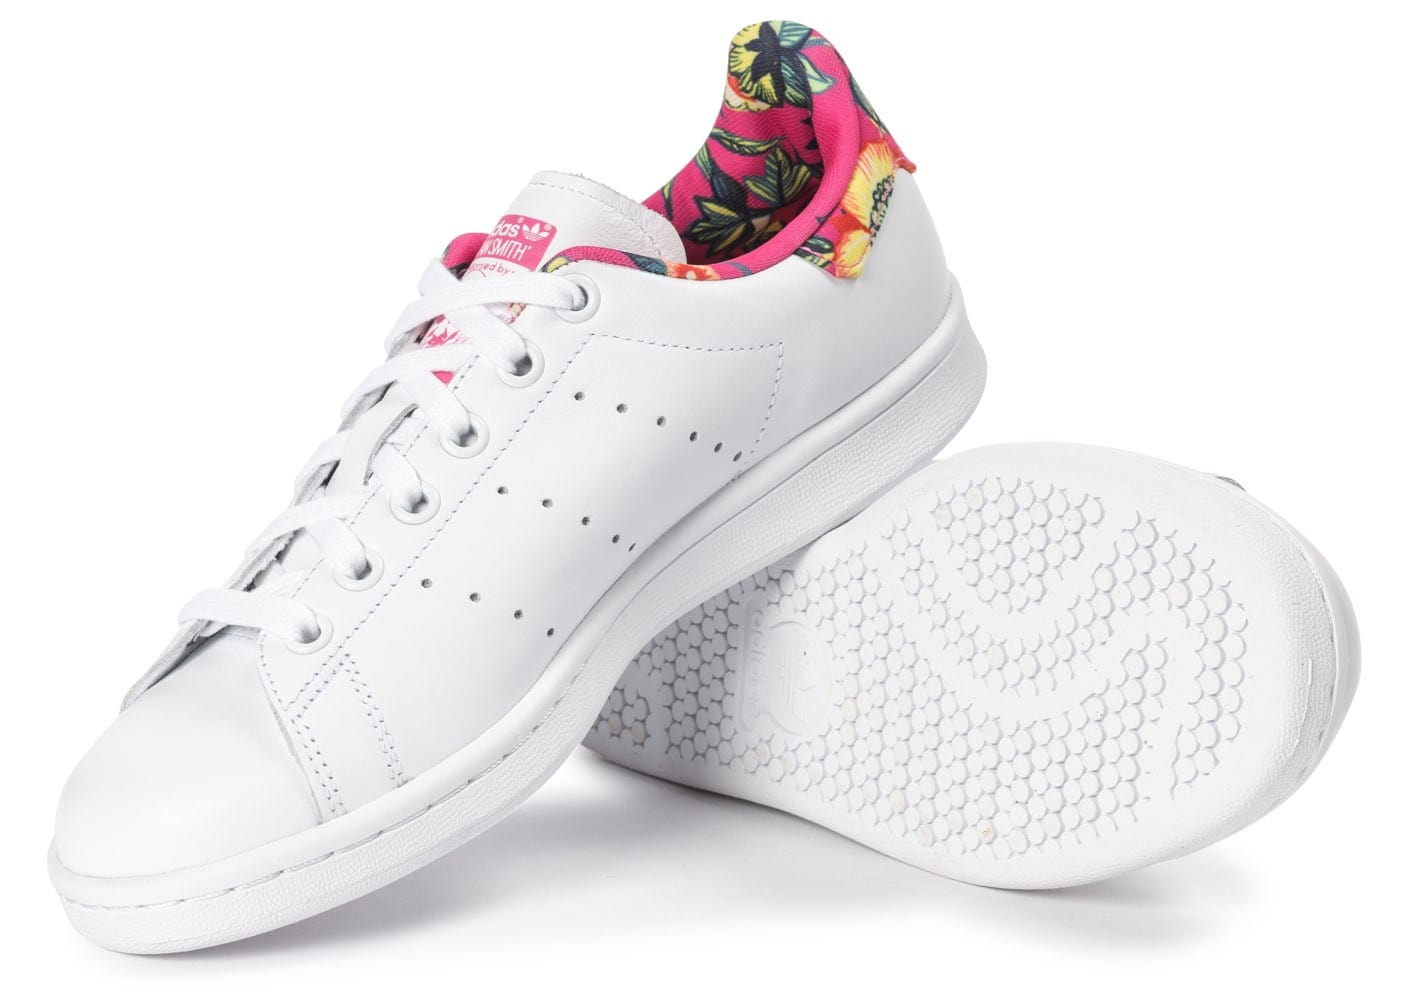 ... Chaussures adidas Stan Smith Floral blanche vue dessous ...